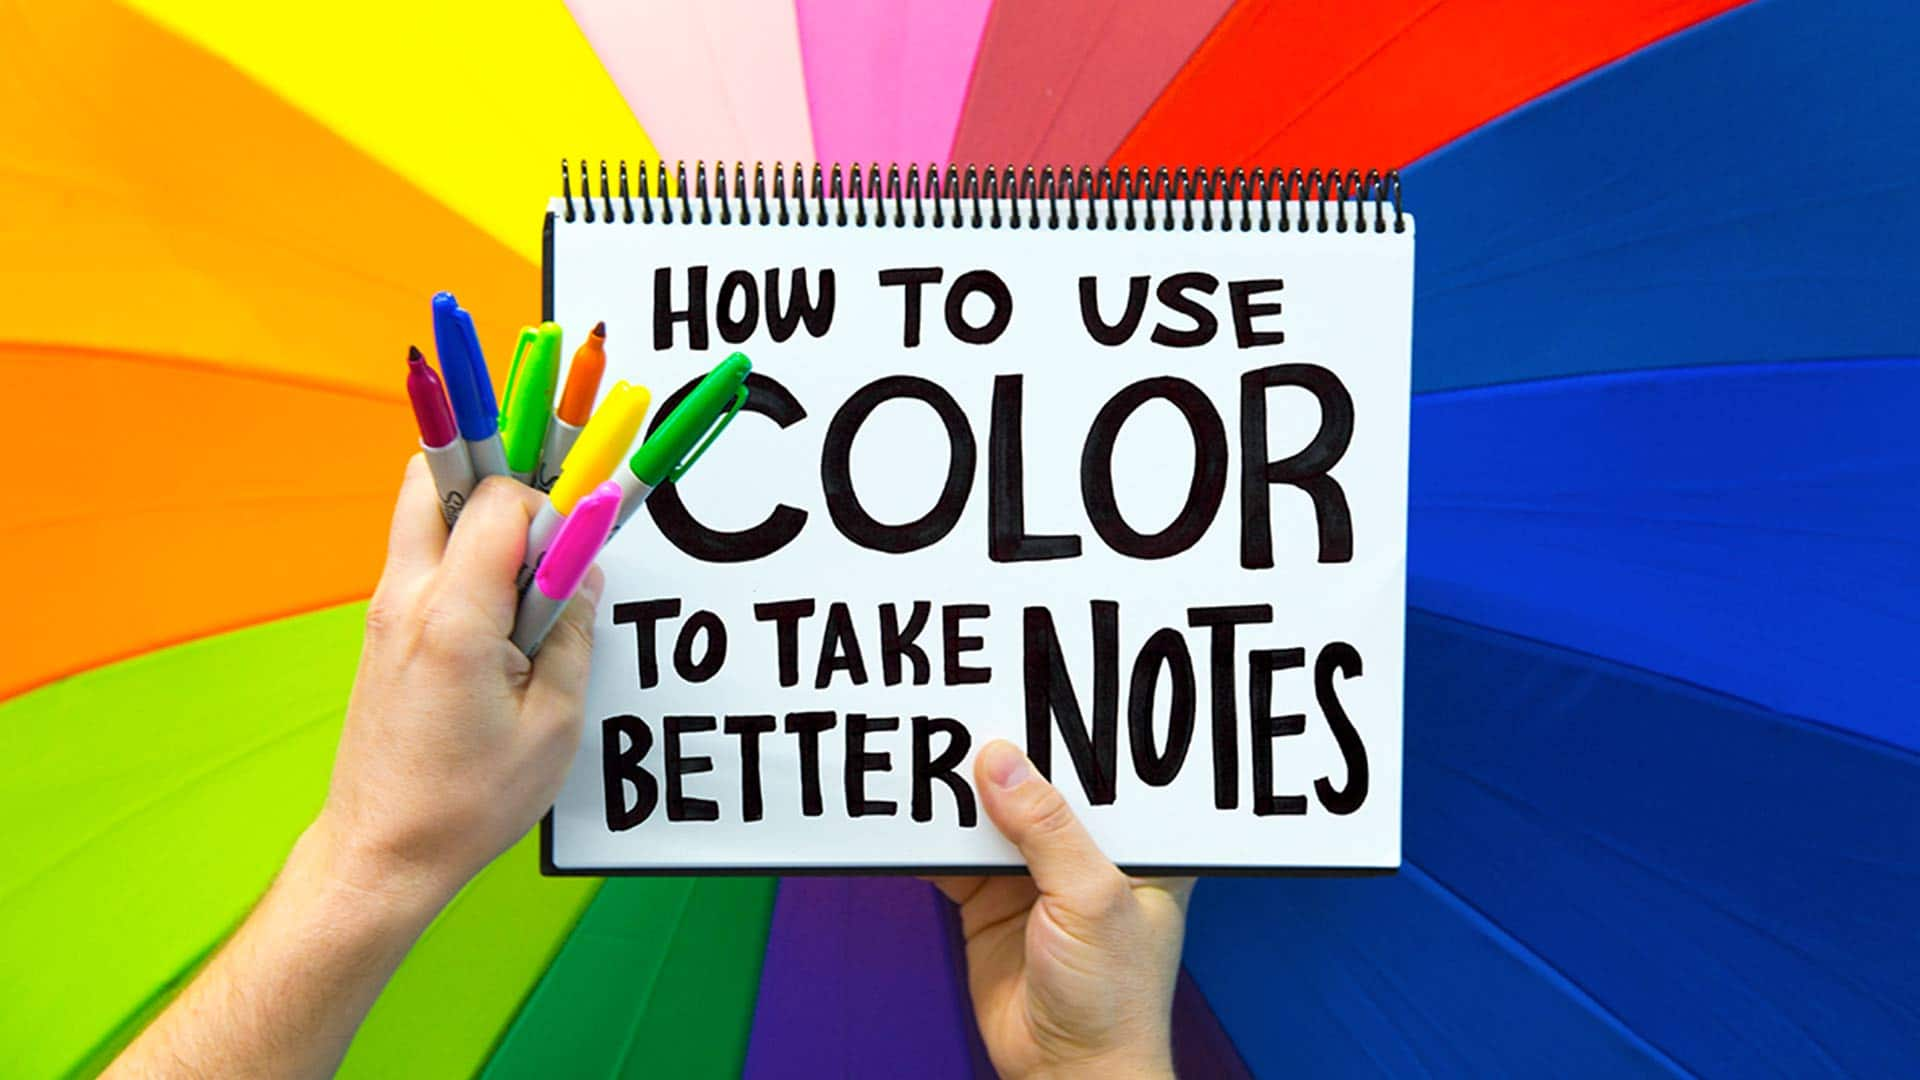 Hot to use color to take better color notes